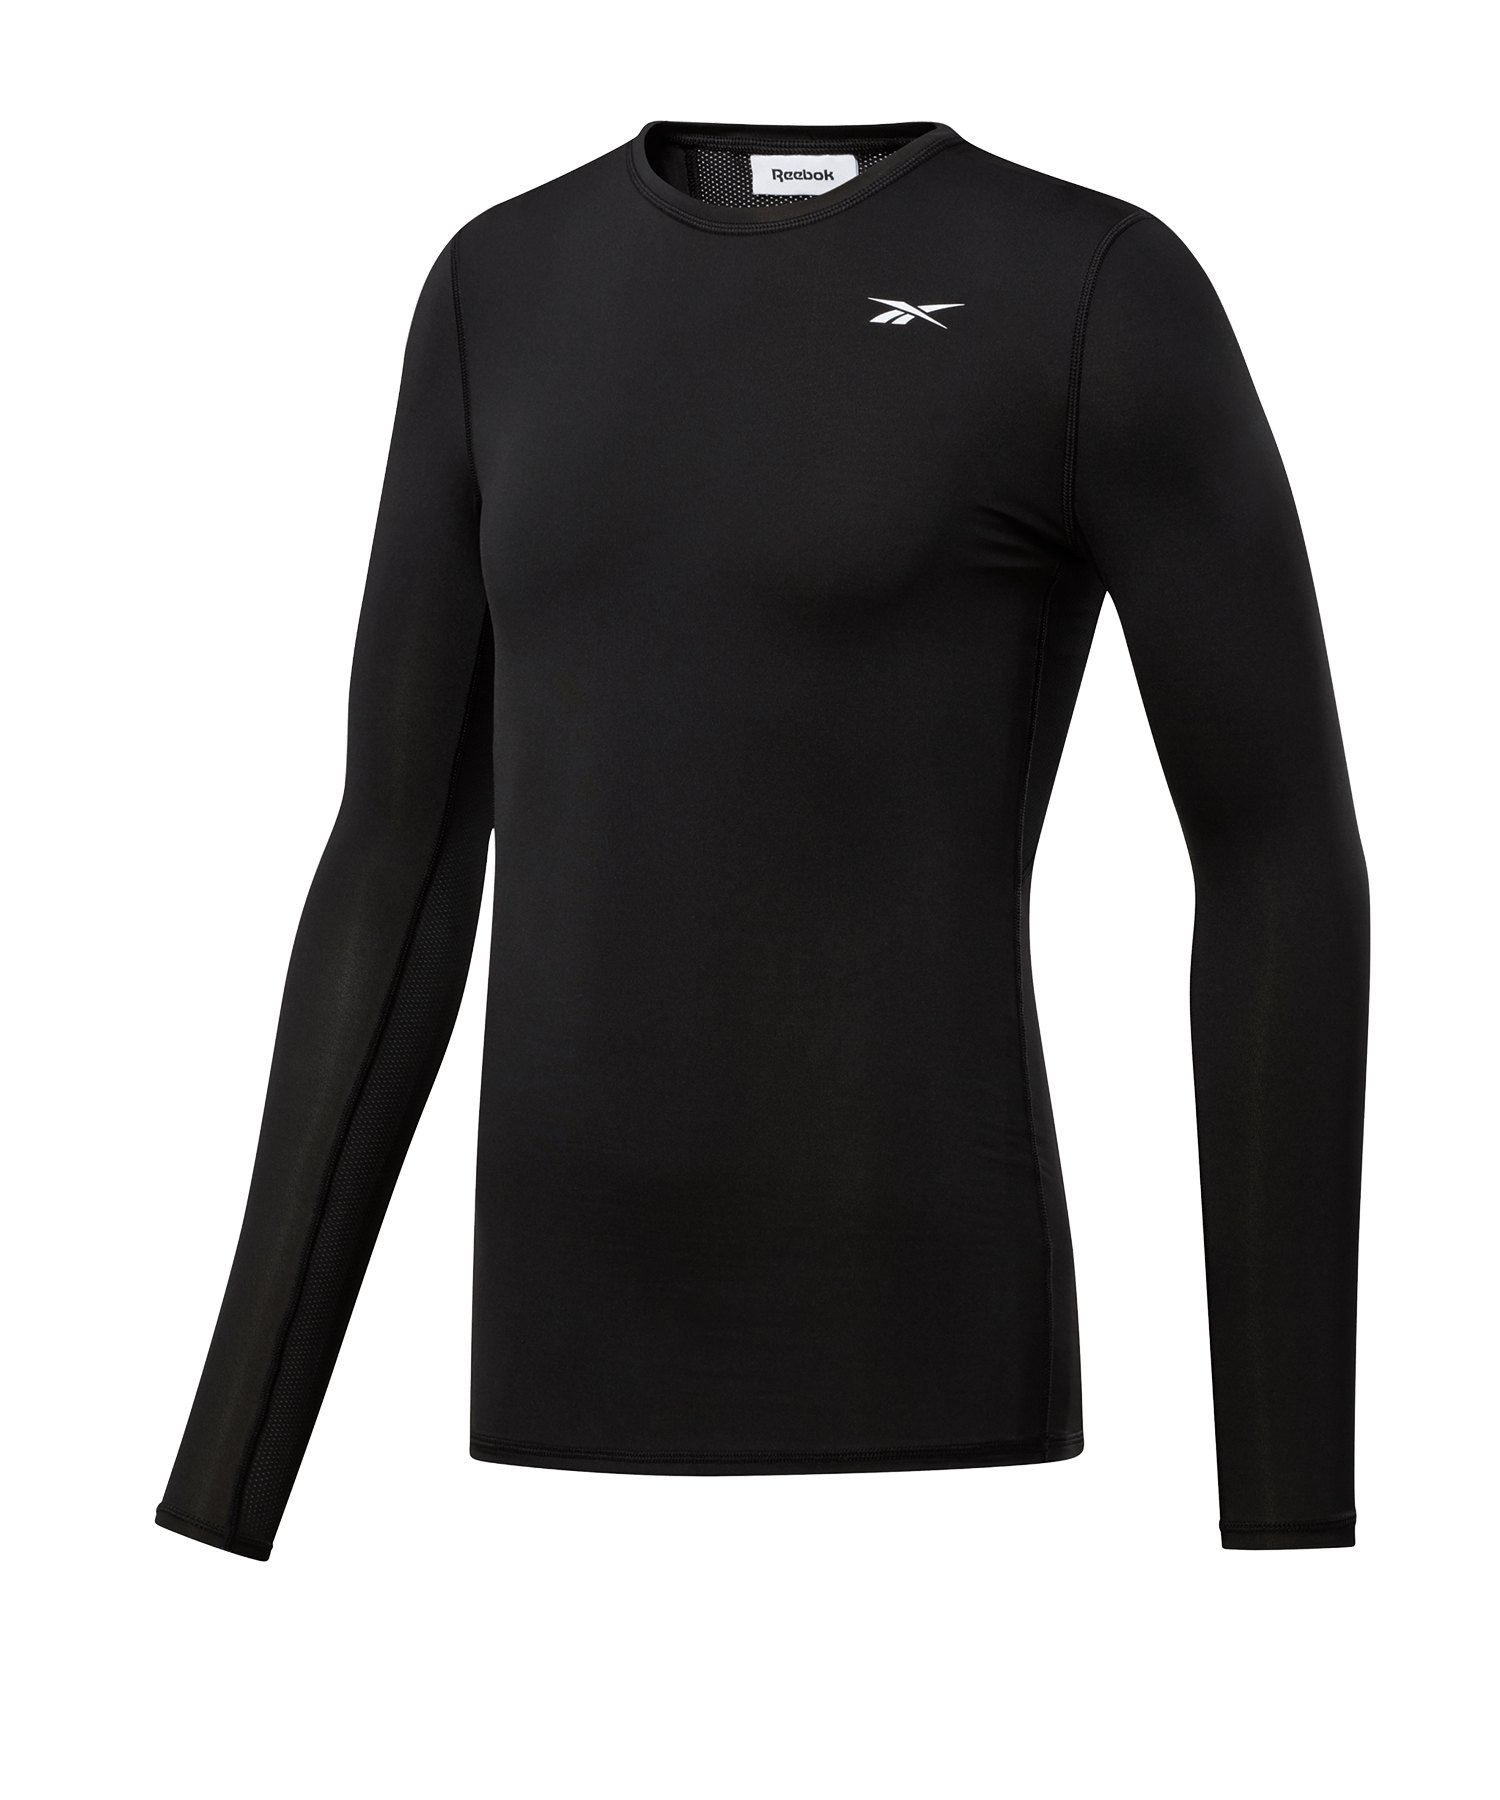 Reebok Workout Ready Compression Shirt Schwarz - schwarz